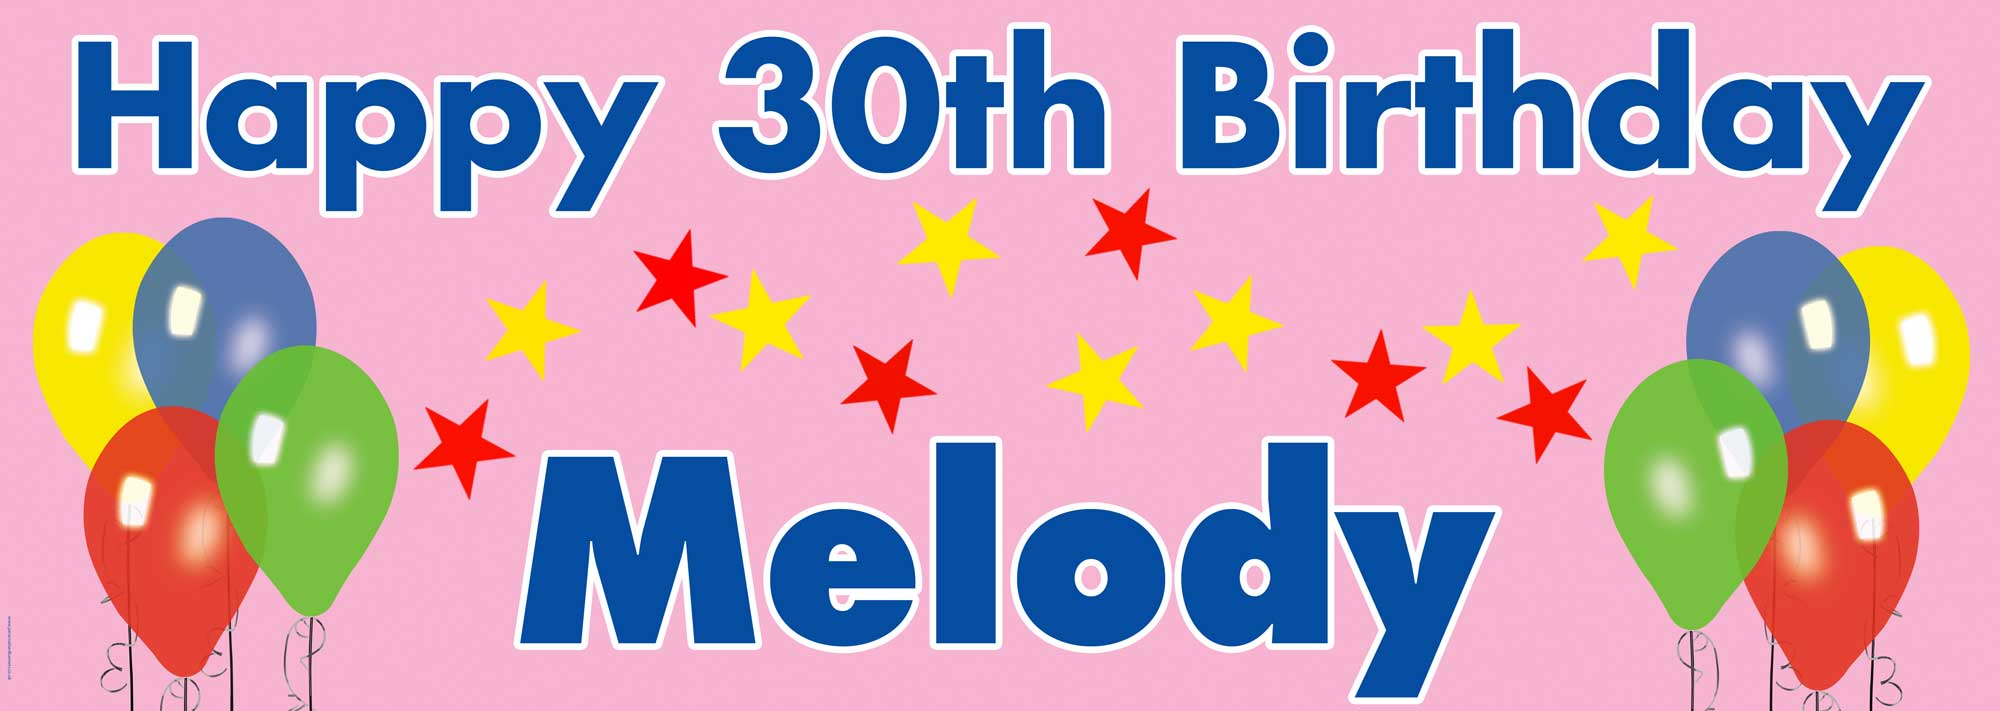 Balloons and stars style of birthday banner